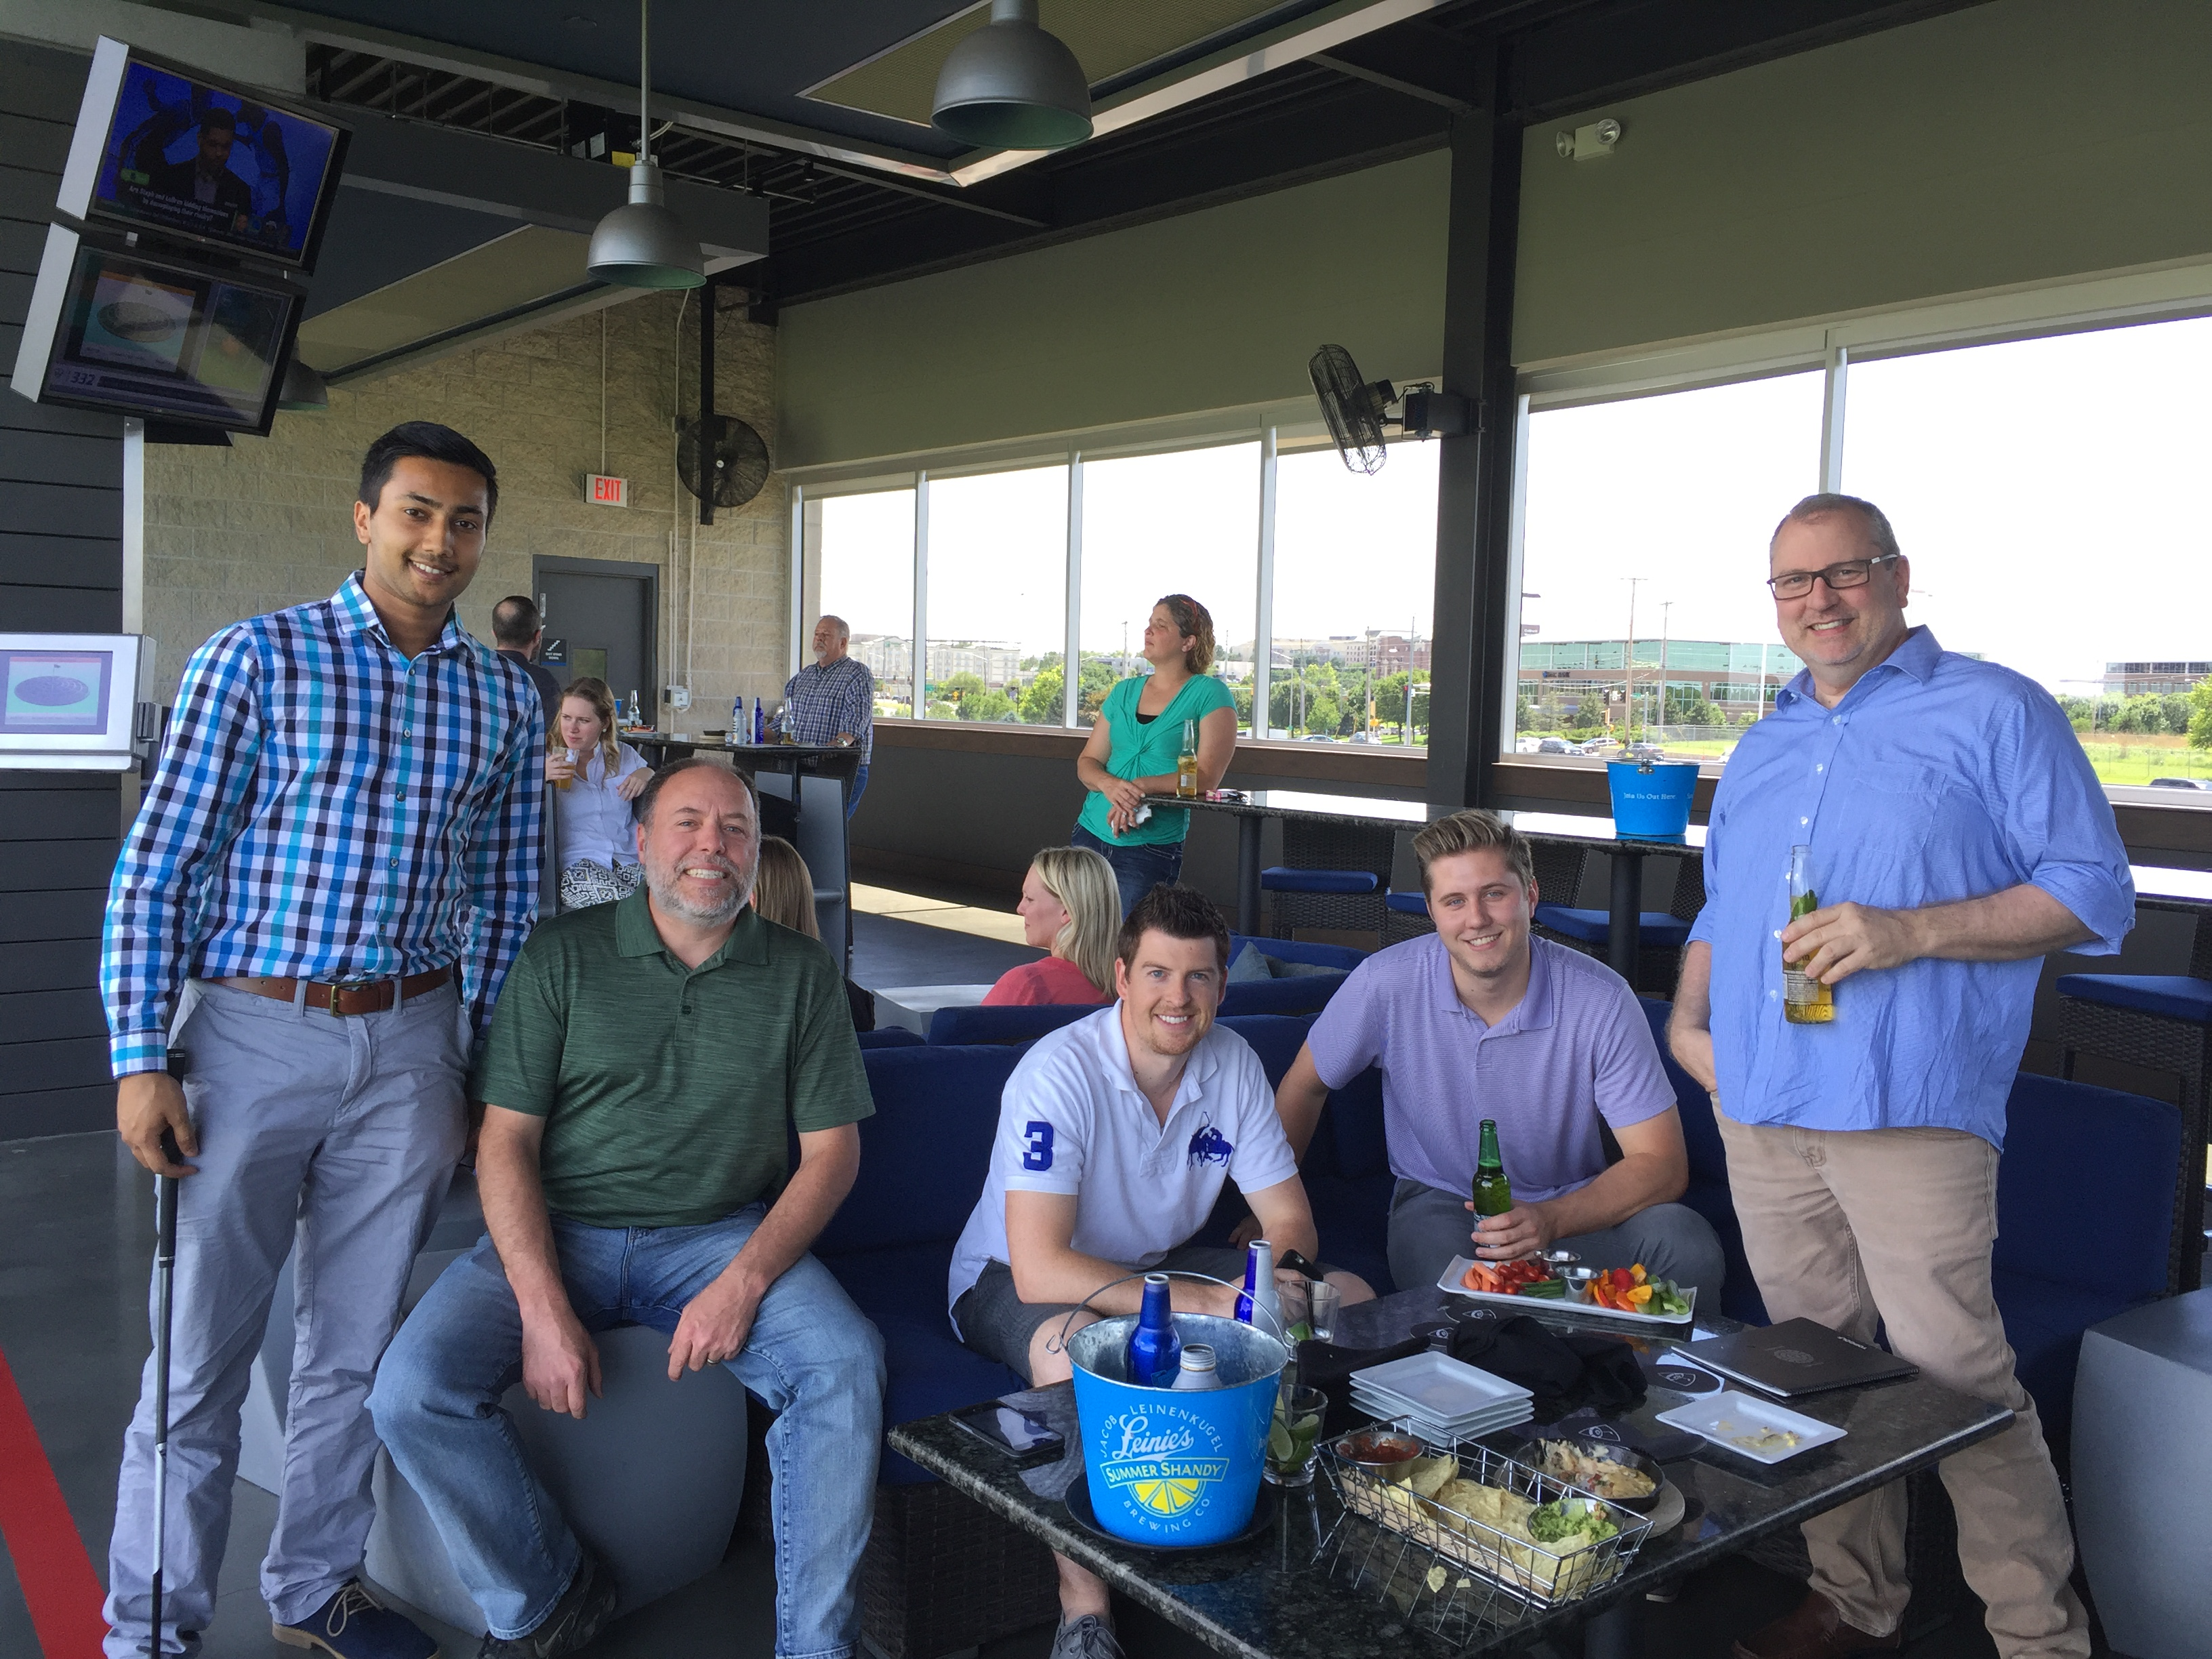 Top Golf company outing 2016